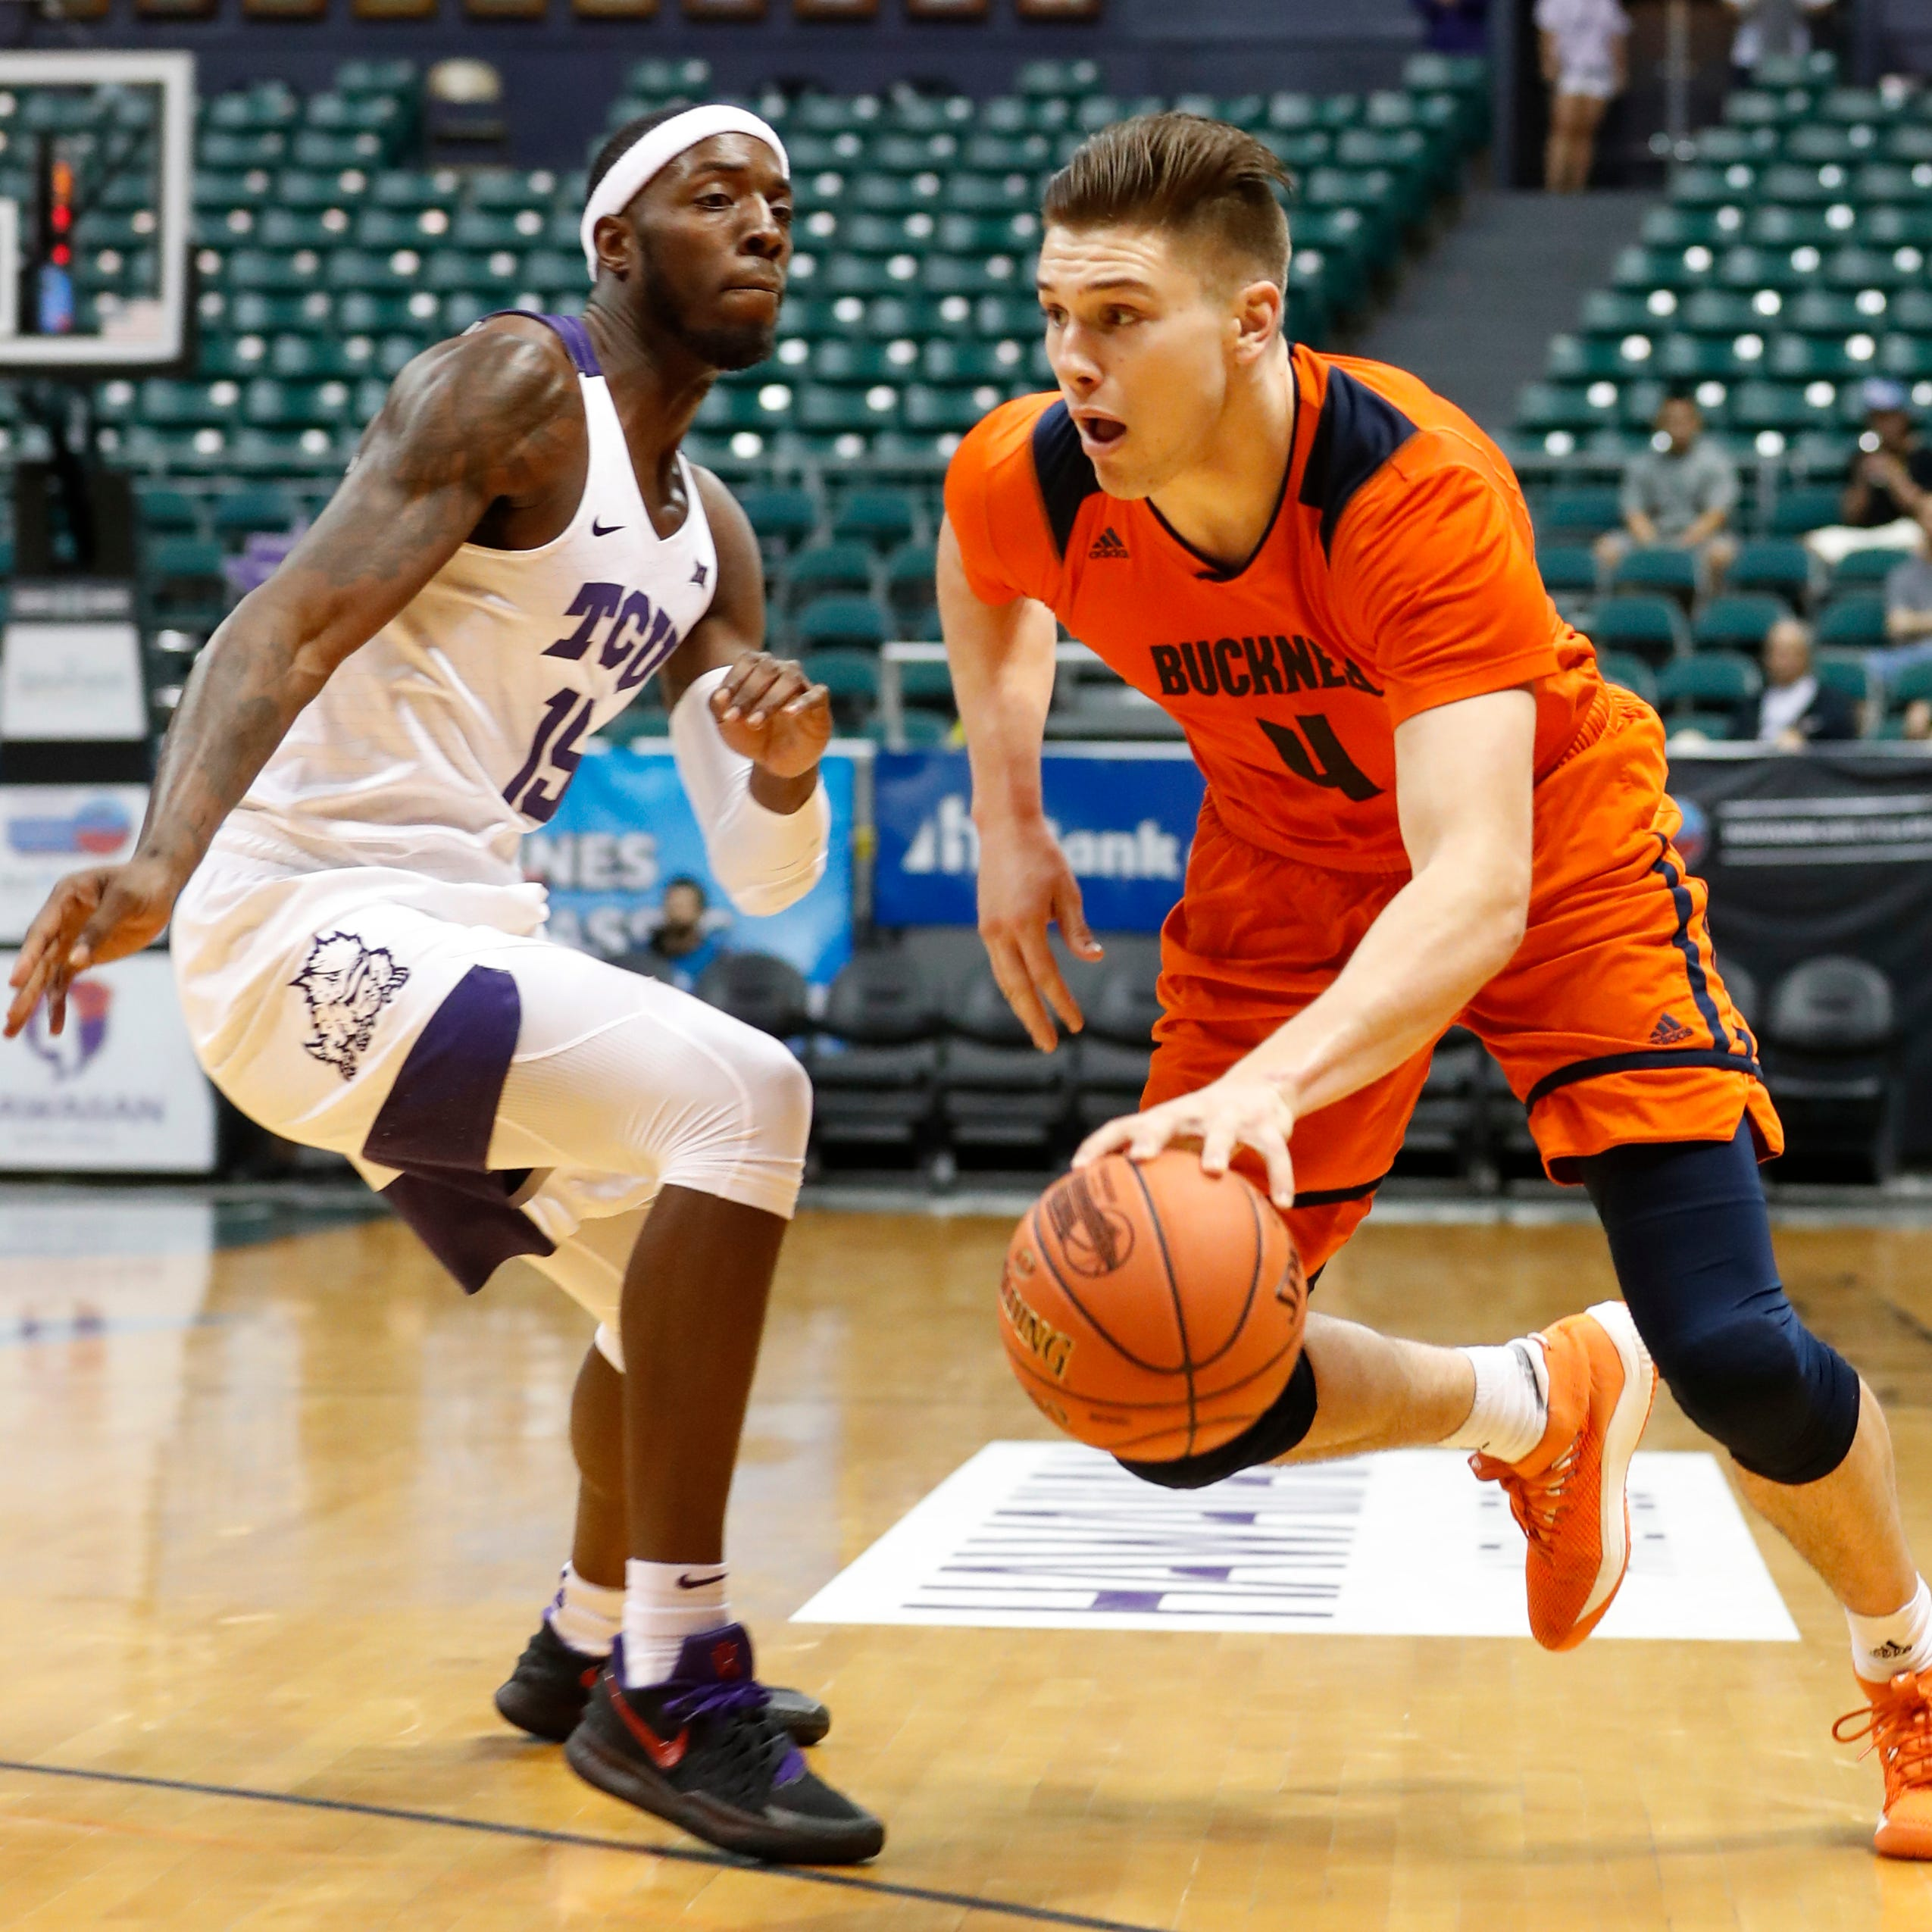 Kentucky basketball adds Bucknell graduate transfer Nate Sestina for next season